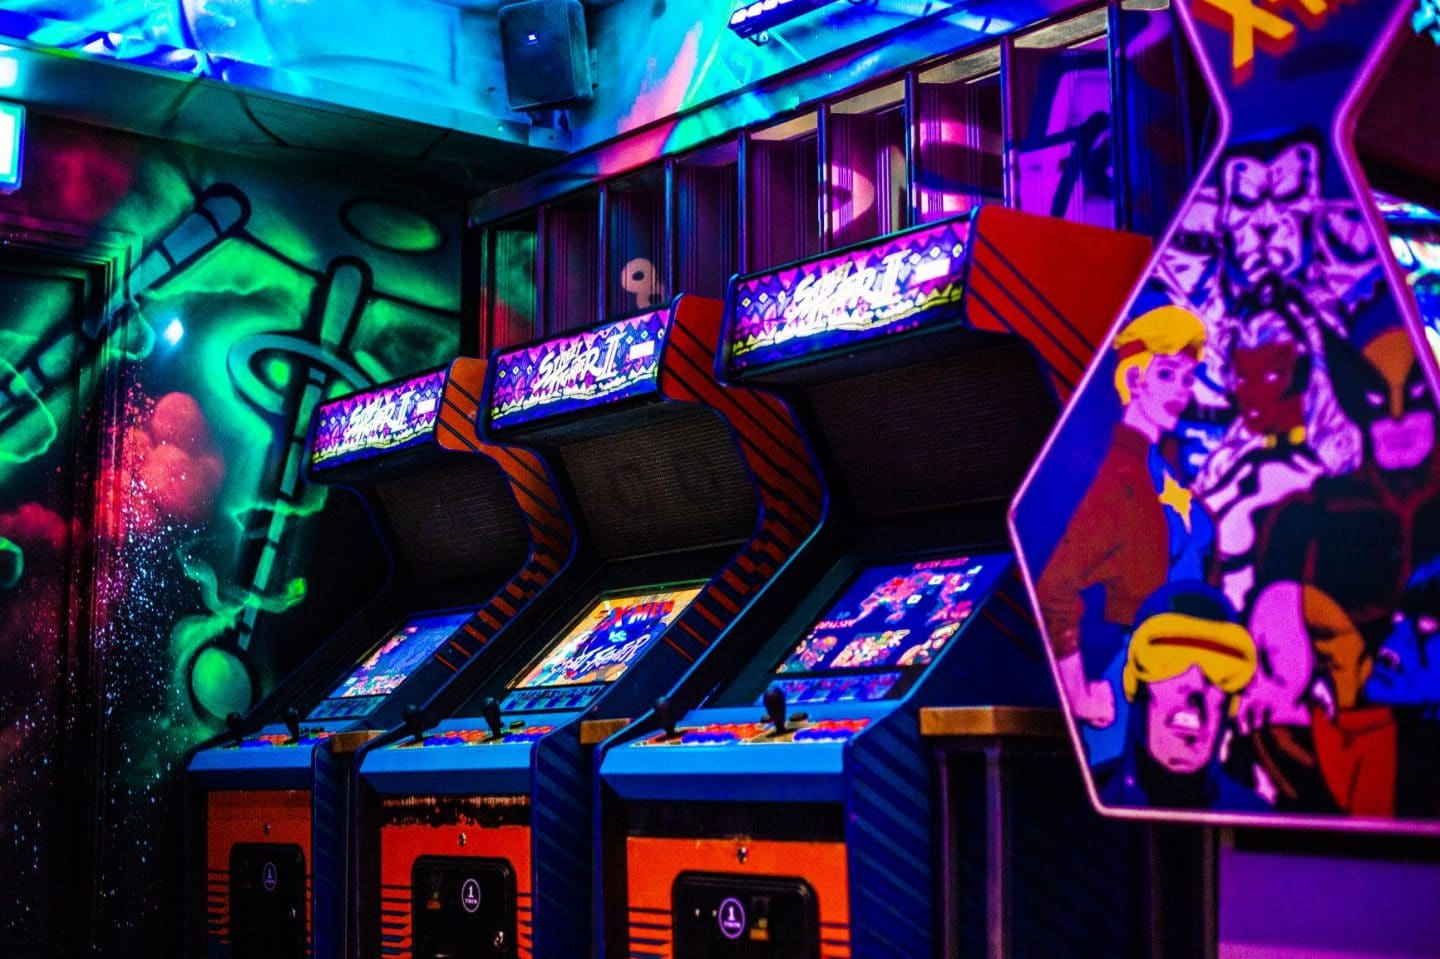 Inside NQ64 - Northern Quarter's New Retro Arcade Bar